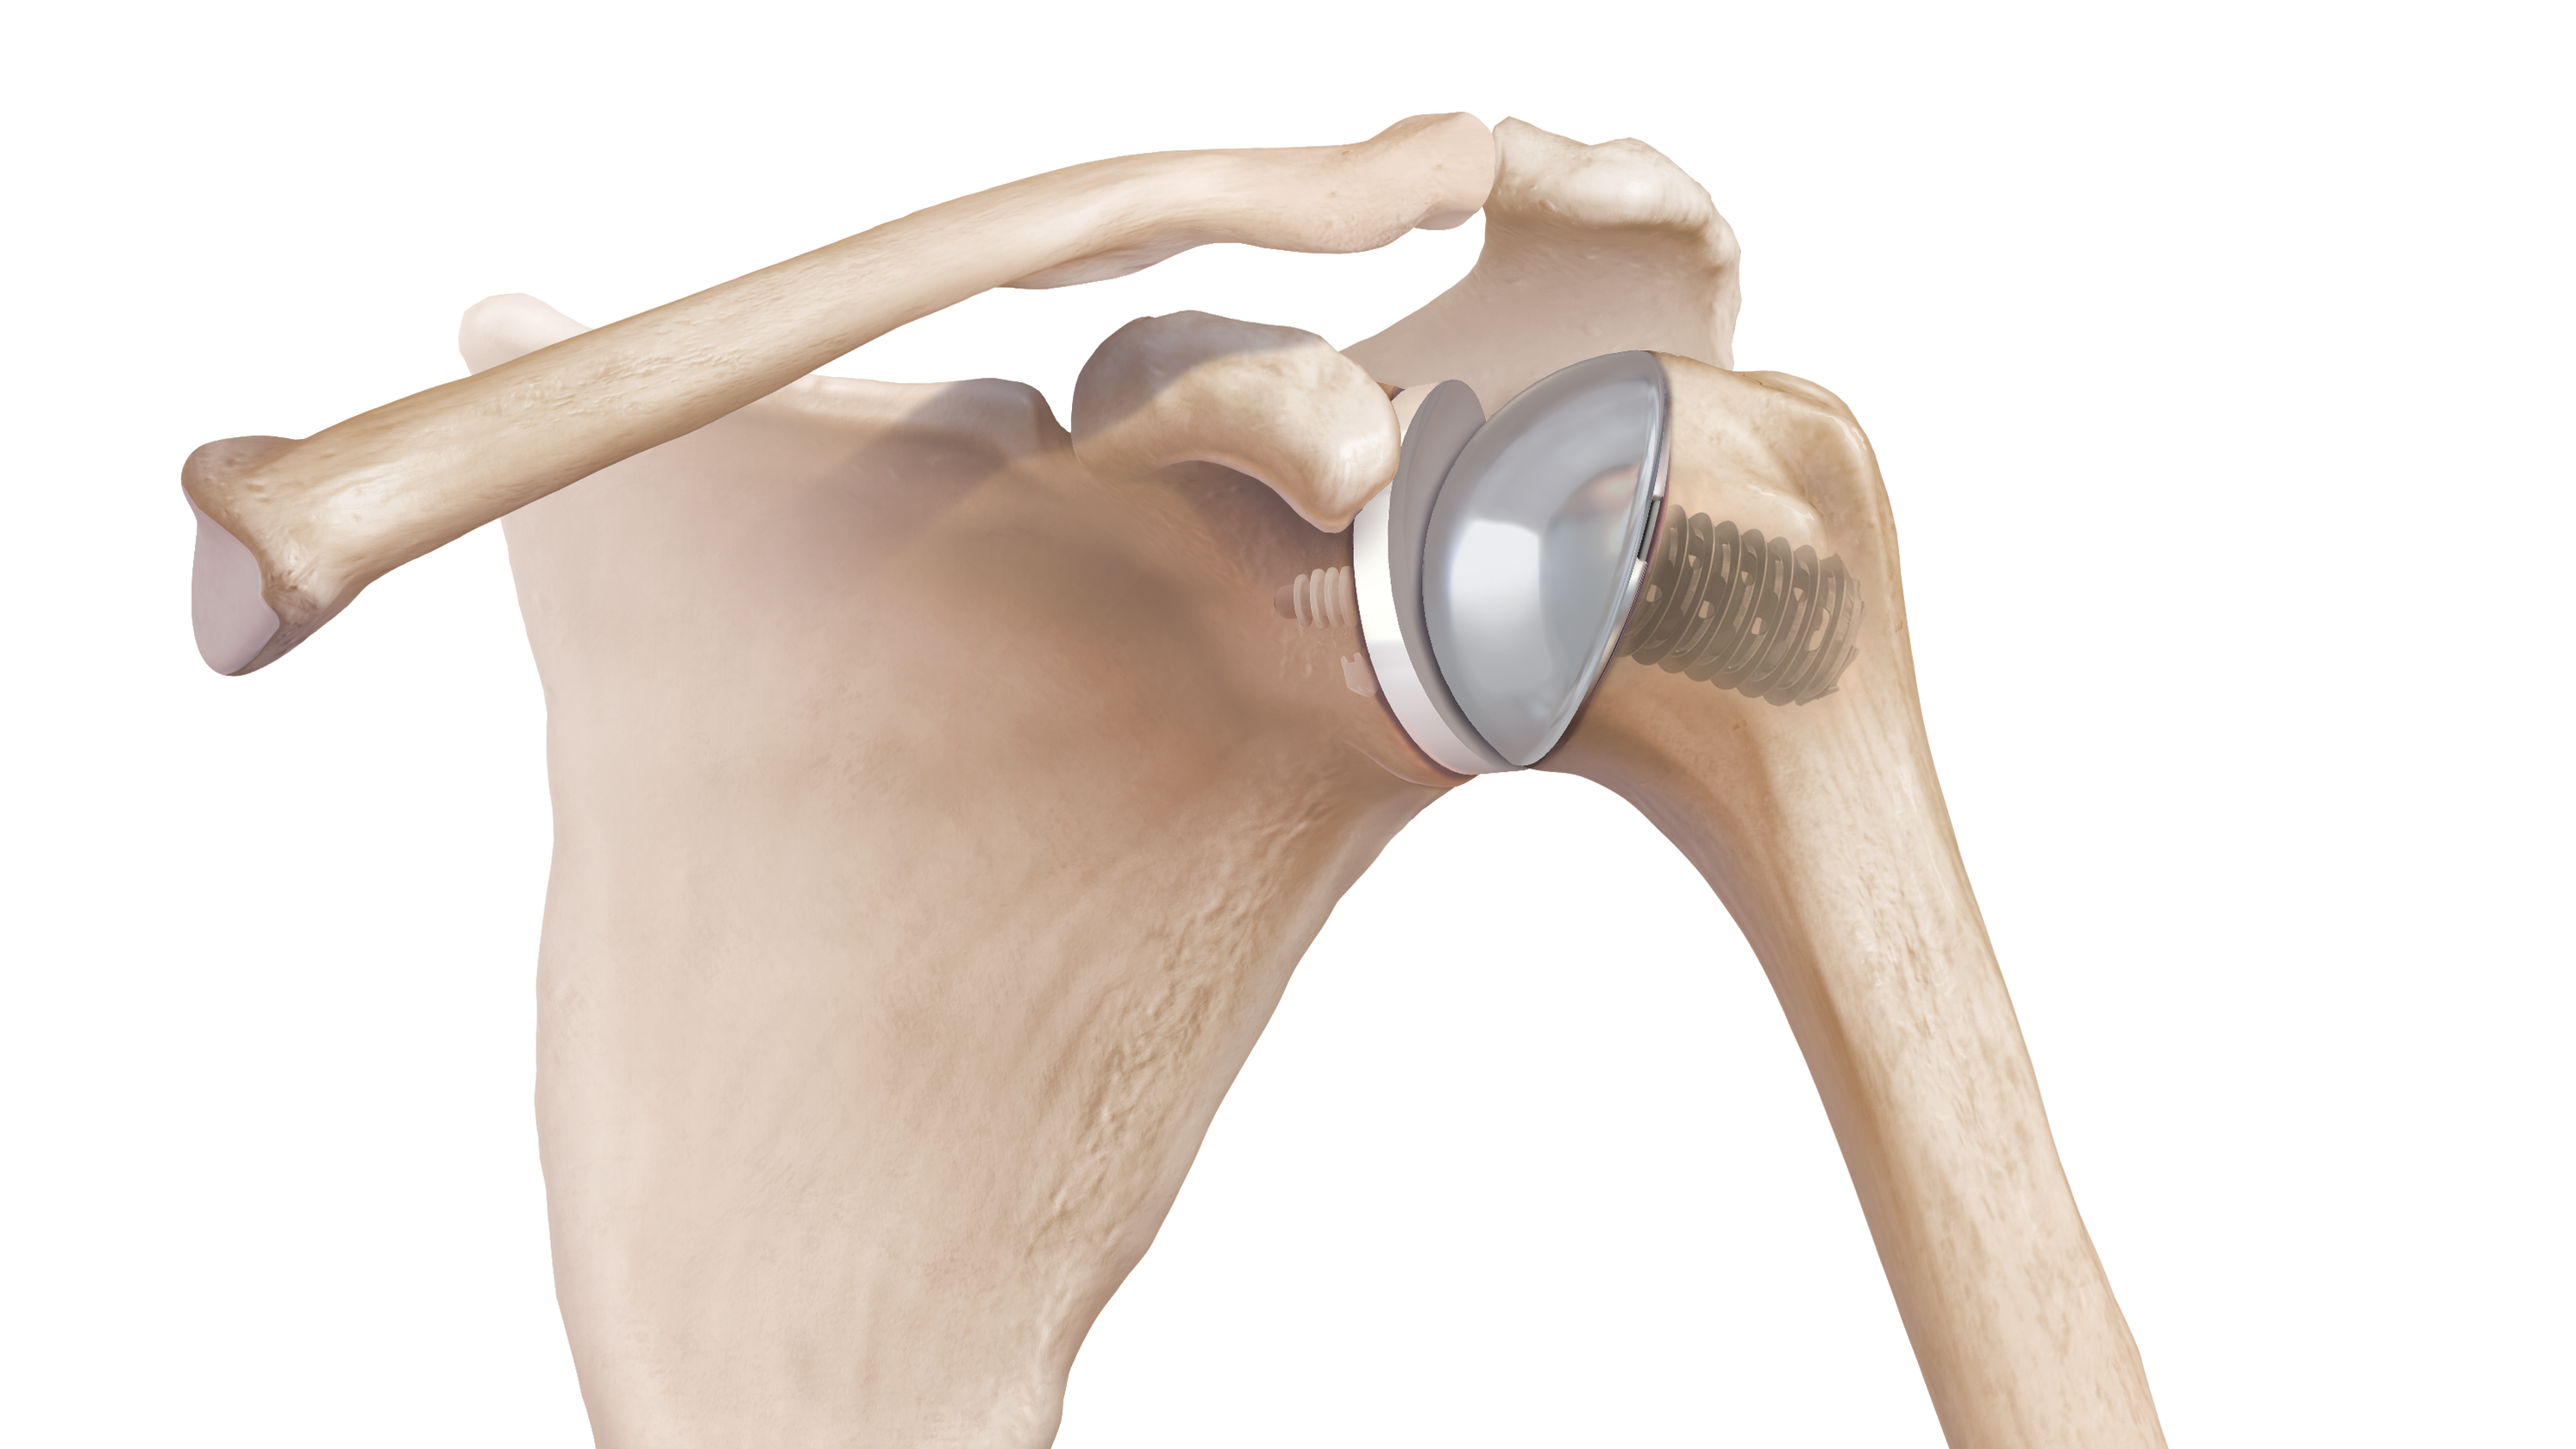 Arthrex says FDA clears total shoulder replacement system